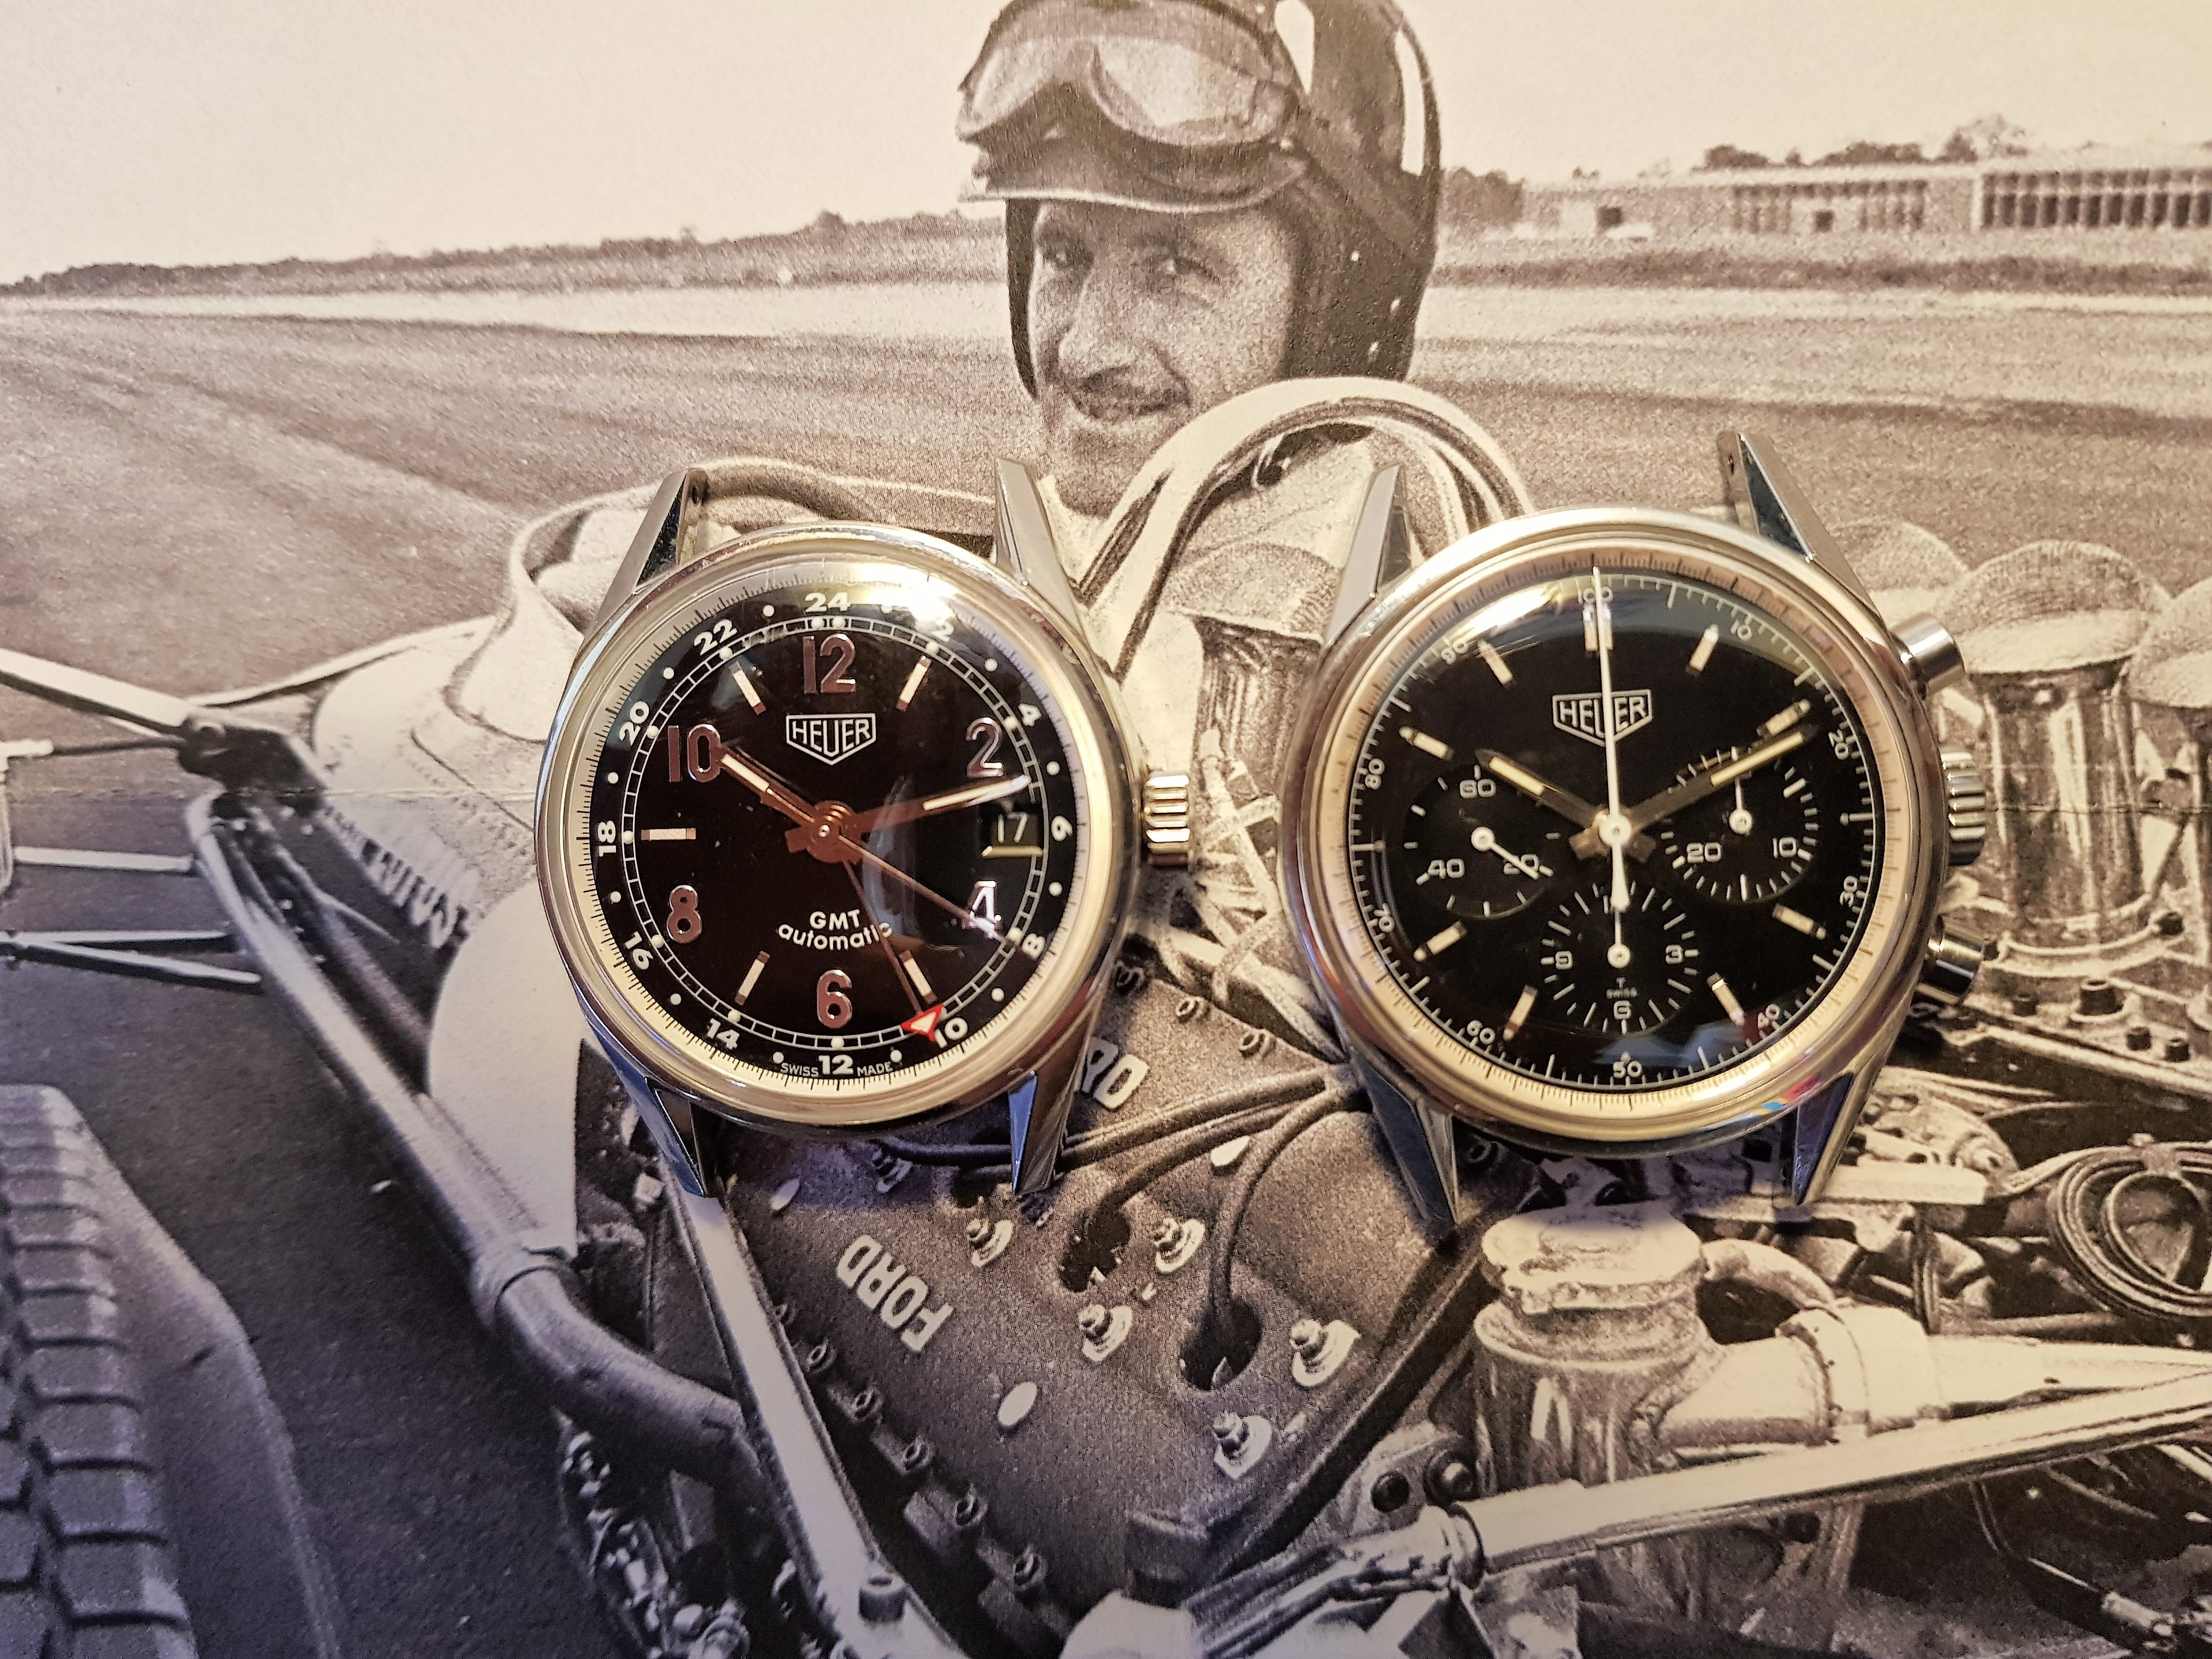 Heuer Carrera WS2113 and CS3111 re-editions